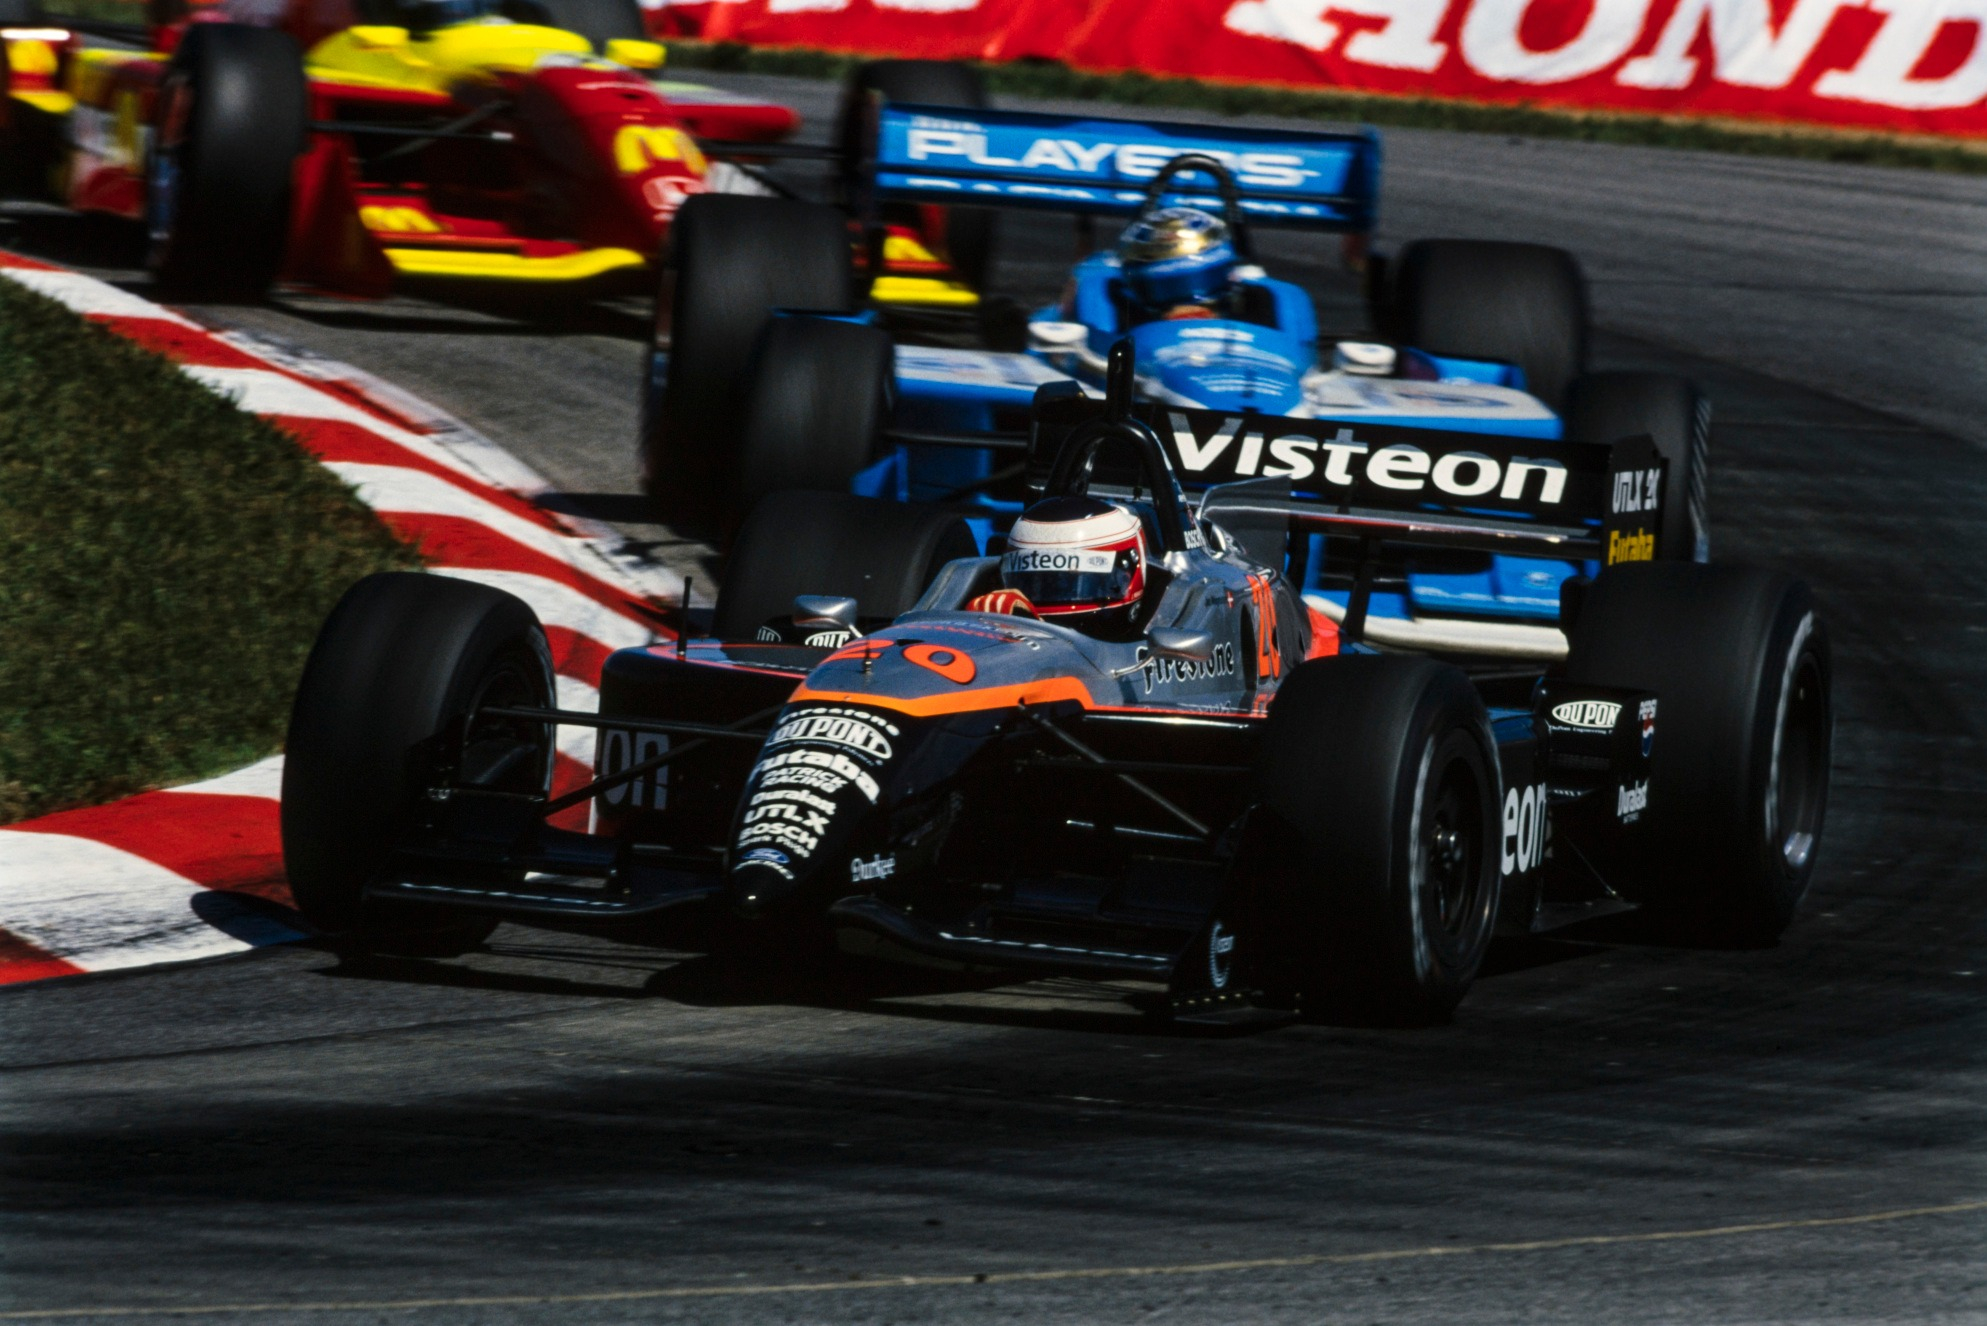 Seven race spell with Patrick in 1999 was a disappointing coda to his single-seater career